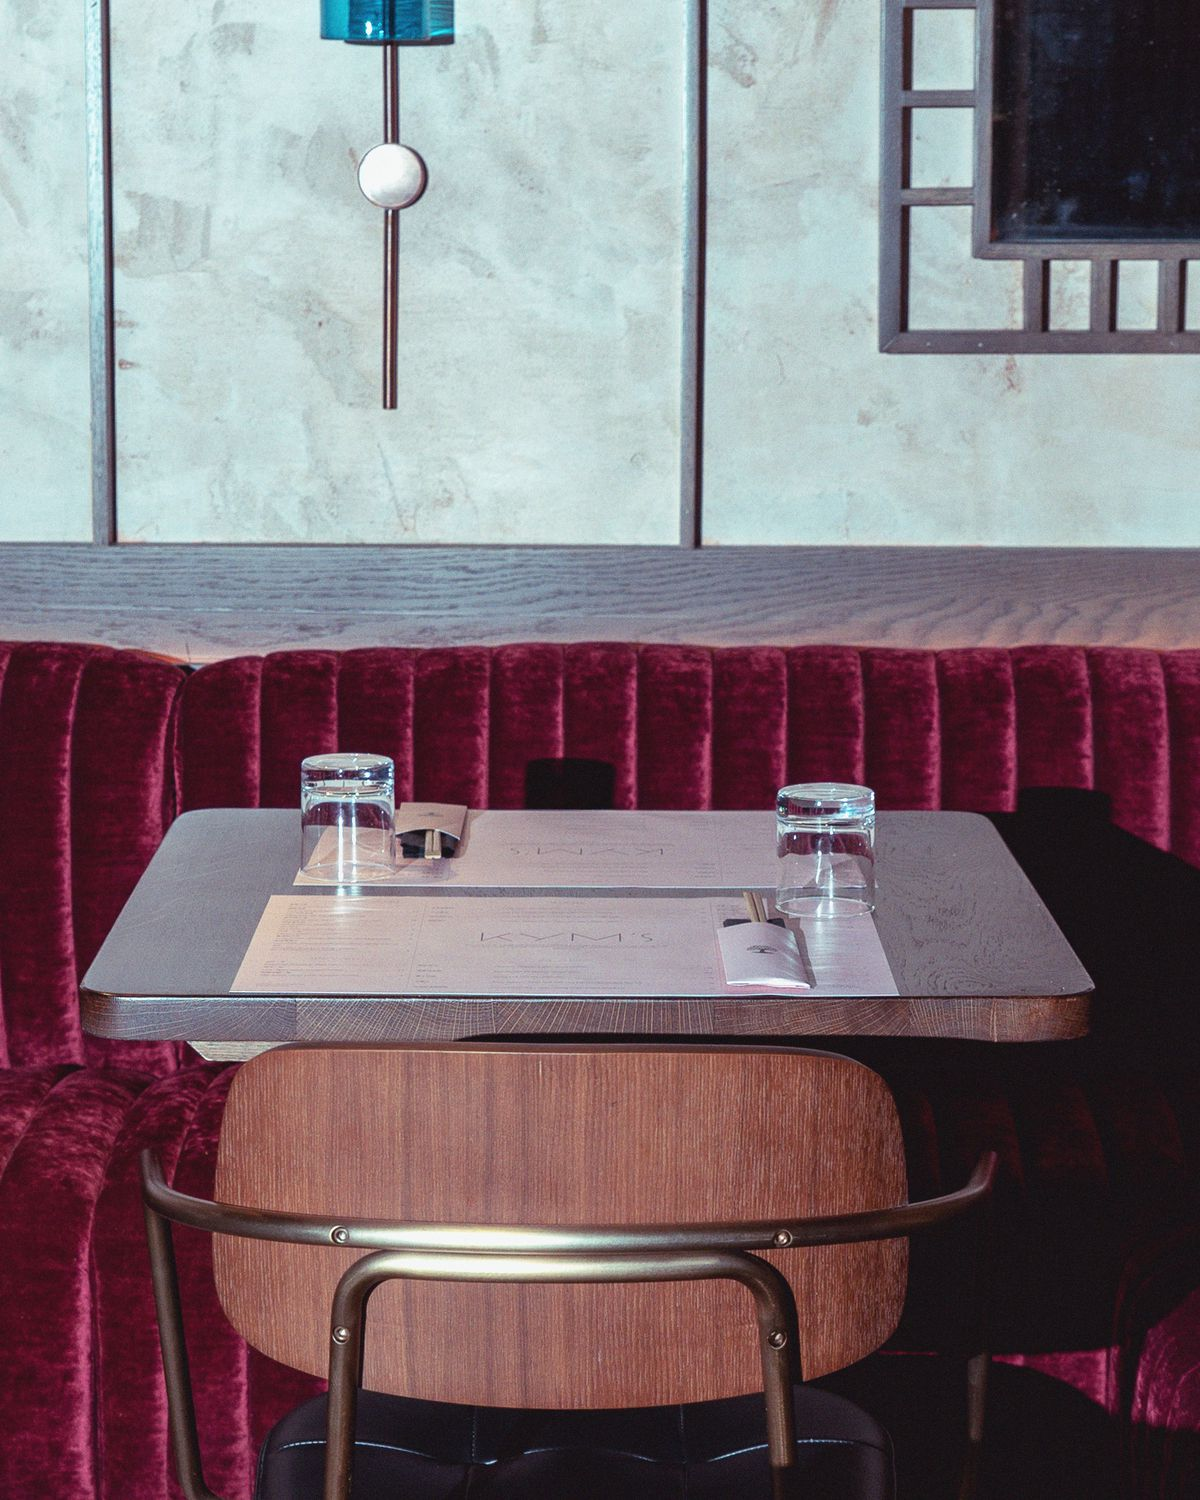 Table-setting with velvet banquettes and chopsticks at Kym's in the Bloomberg Arcade restaurant development, London - the follow-up to Michelin-starred dim sum restaurant A. Wong in Victoria